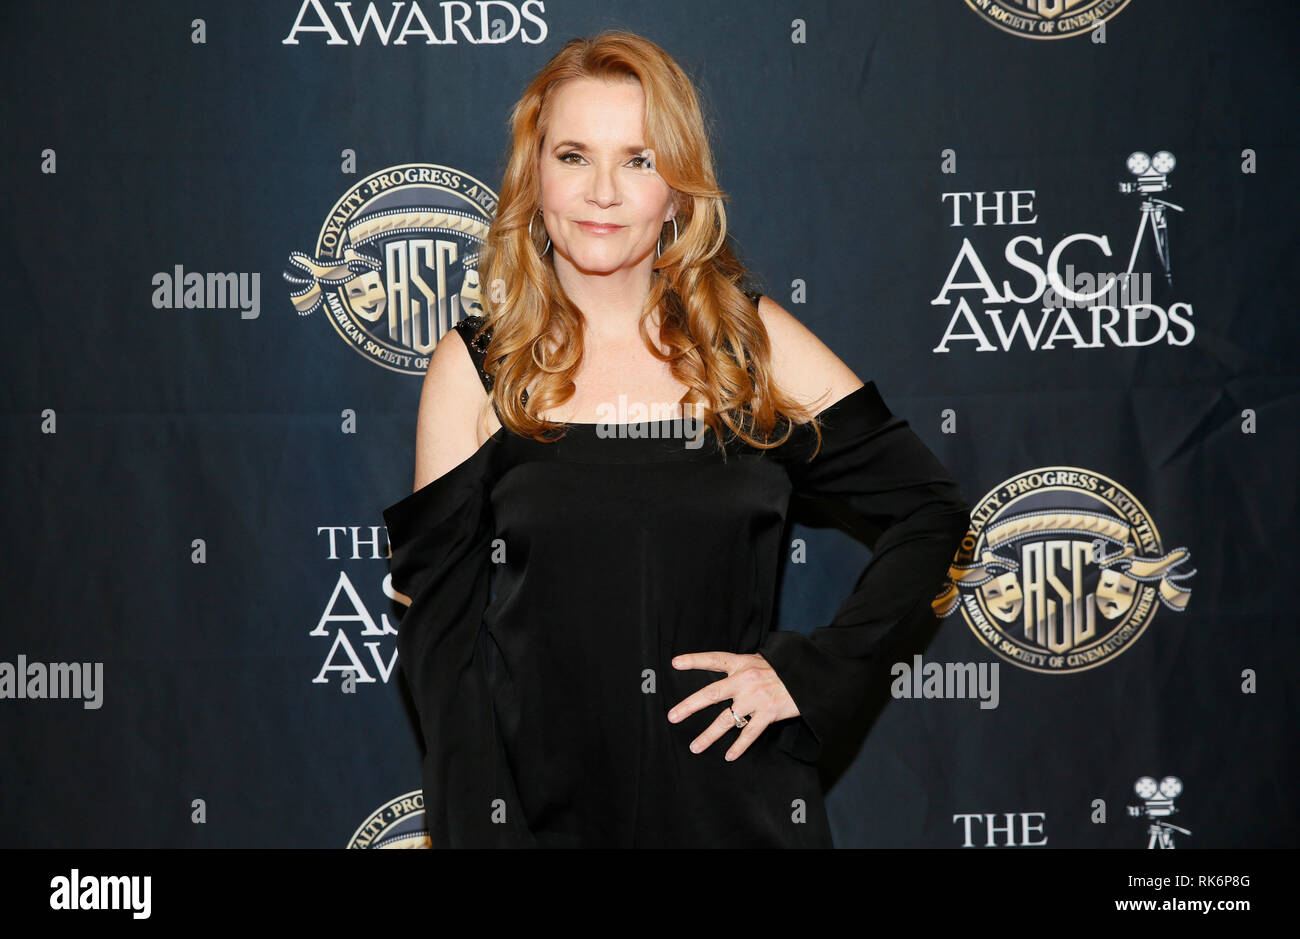 California, USA. 9th Feb 2019. Actress Lea Thompson poses at the 33rd annual ASC Awards and The American Society of Cinematographers 100th Anniversary Celebration at the Ray Dolby Ballroom at Hollywood & Highland, Saturday, February 9, 2019 in Hollywood, California. Photo by Danny Moloshok/Moloshok Photography, Inc./imageSPACE Credit: Imagespace/Alamy Live News Stock Photo